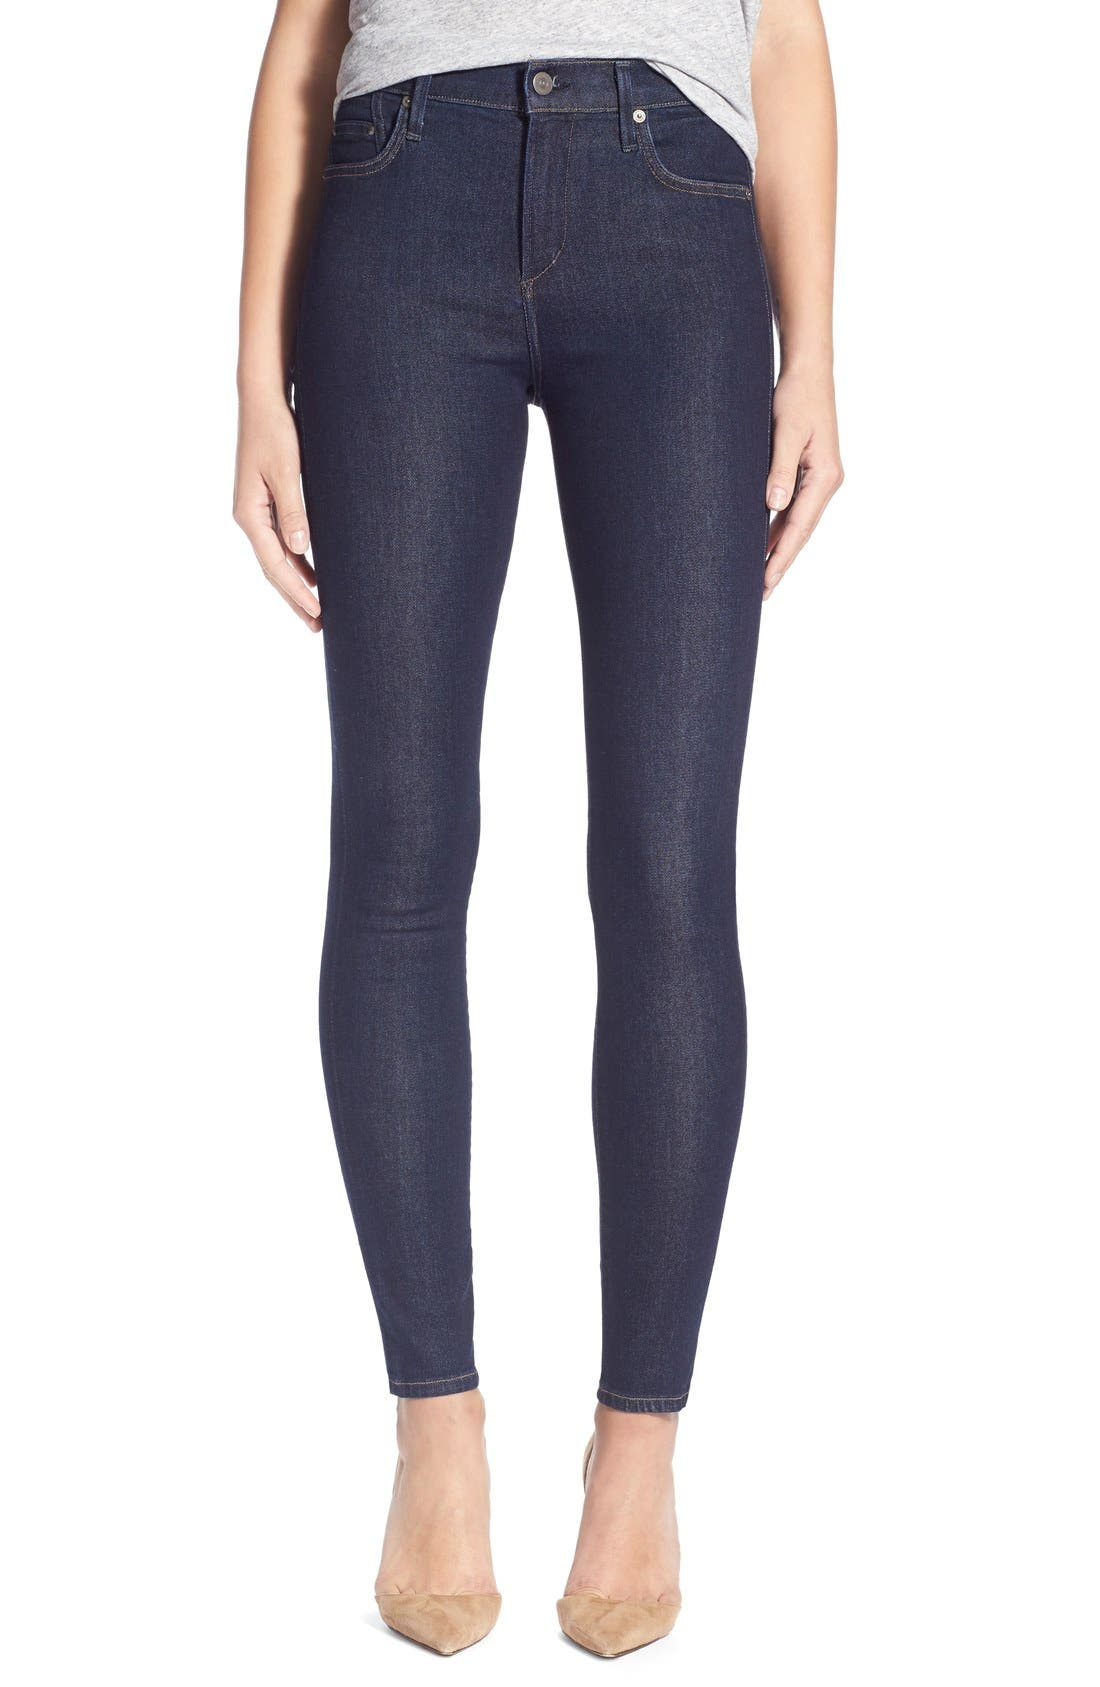 Main Image - Citizens of Humanity 'Sculpt - Rocket' High Rise Skinny Jeans (Clean Blue)